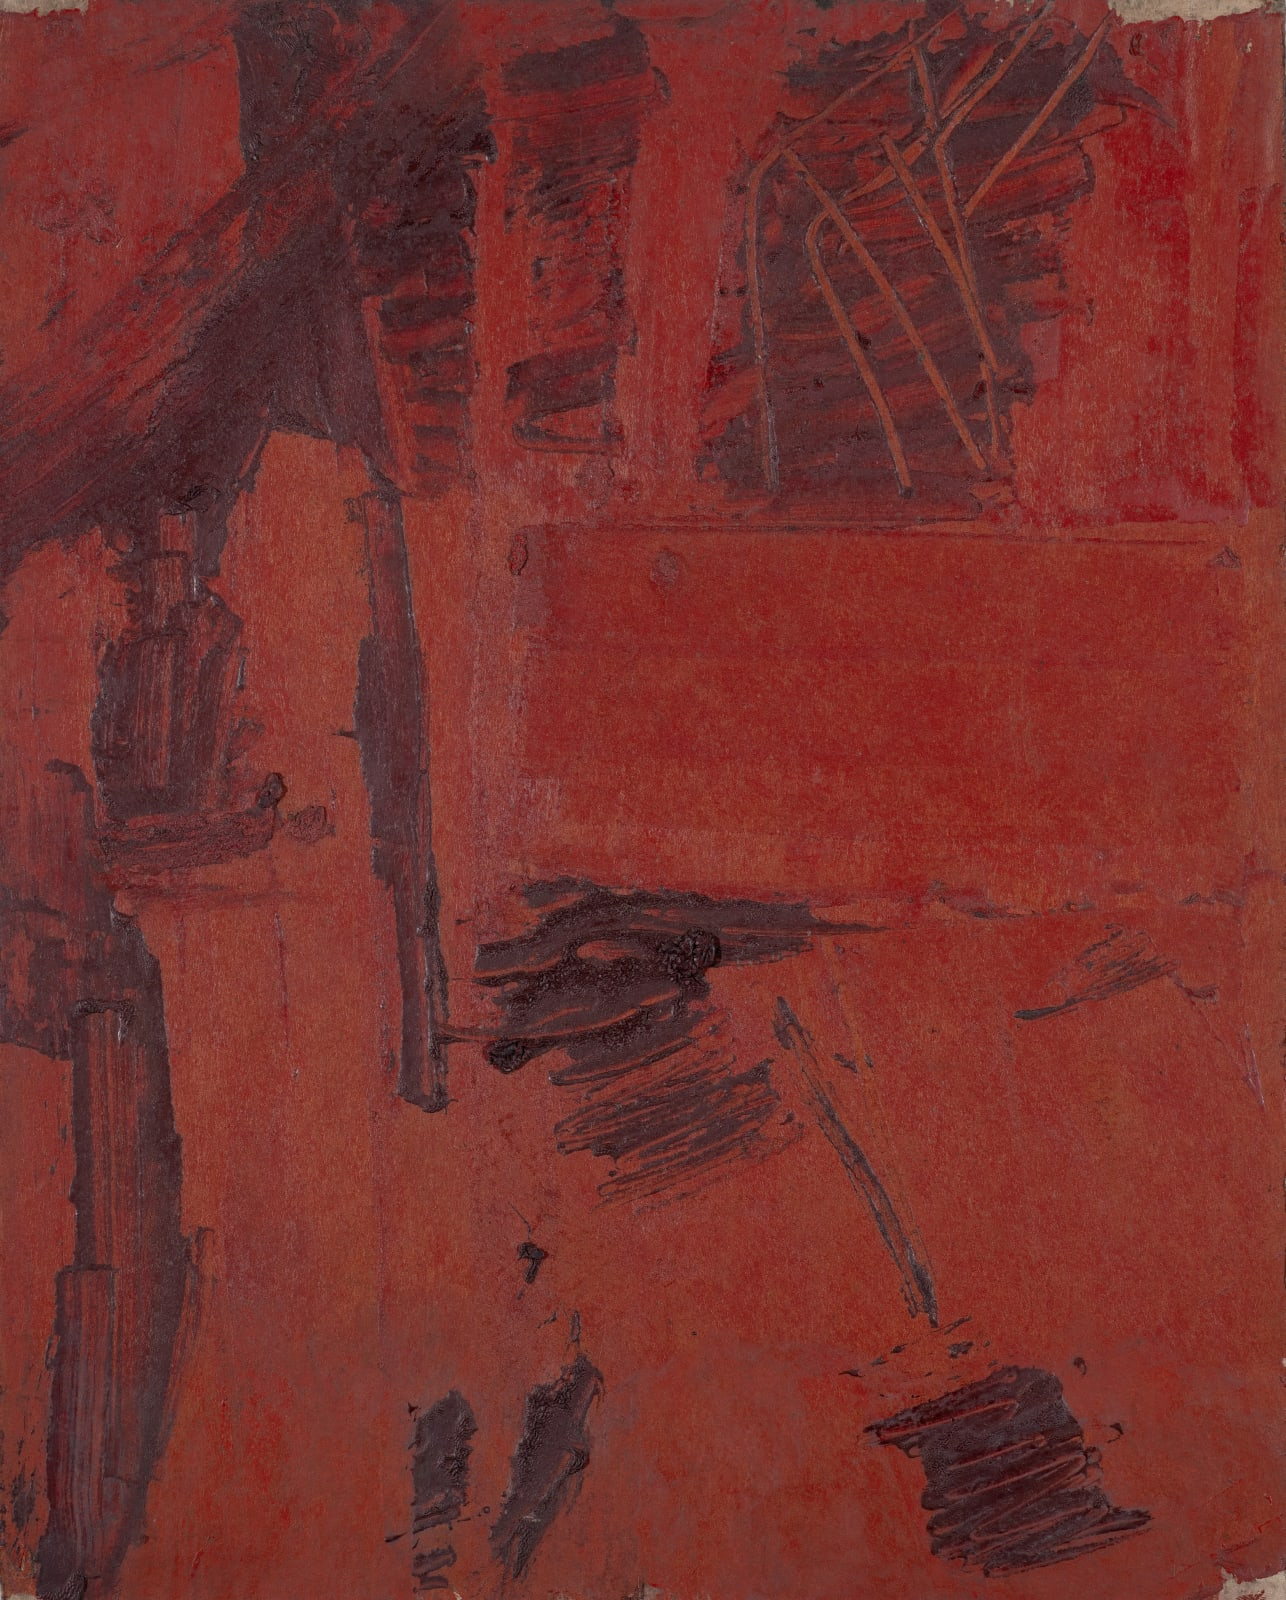 Painting, c.1957-58 Oil on board 35 x 28cm The Gustav Metzger Foundation